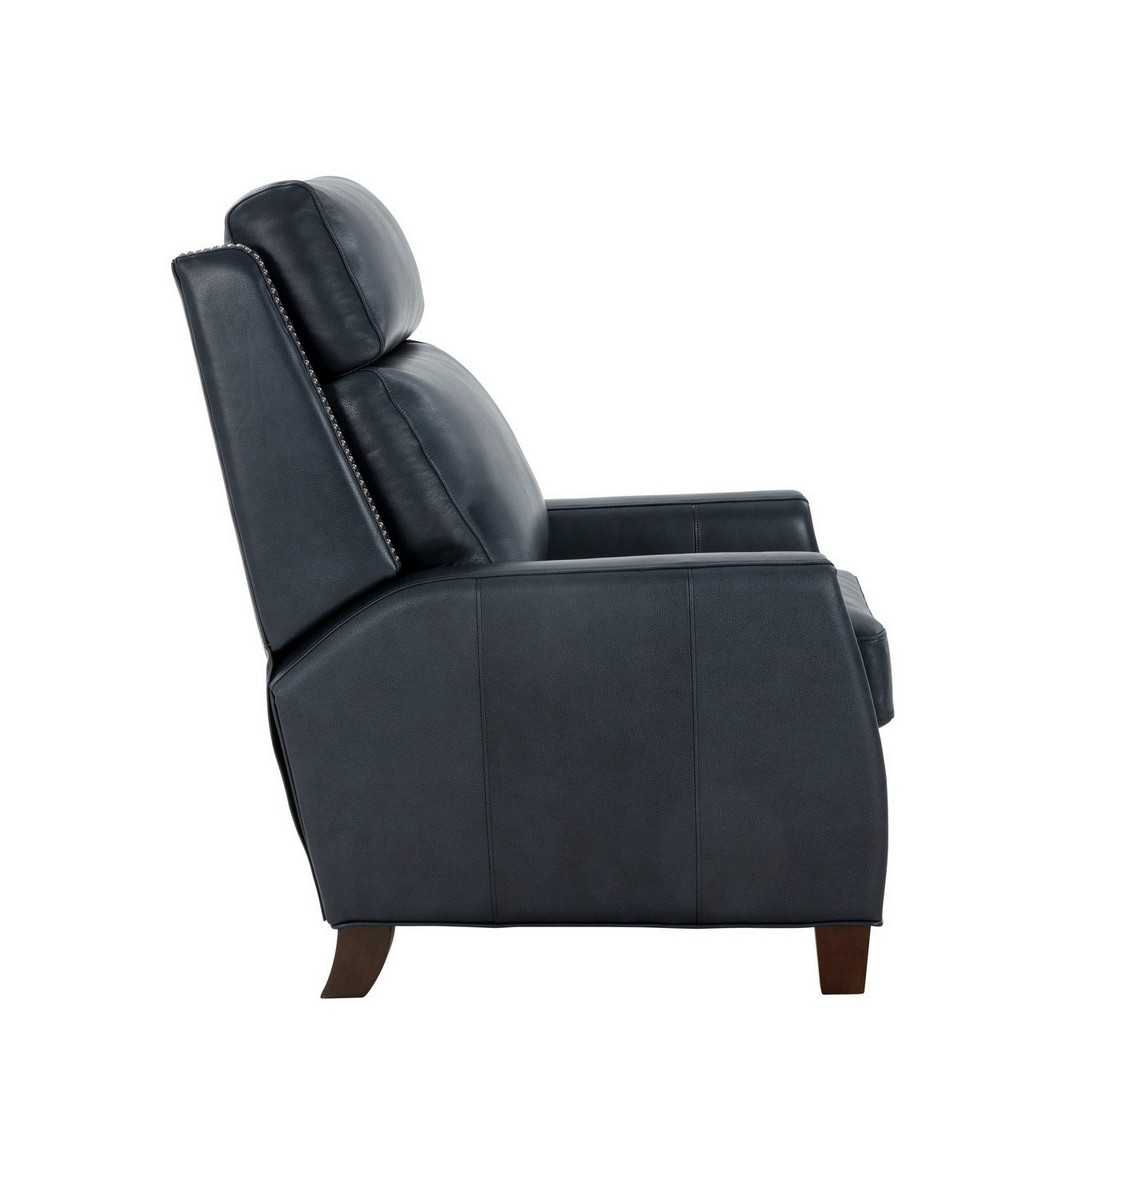 Barcalounger Anaheim Big and Tall Recliner Chair - Barone Navy Blue/All Leather